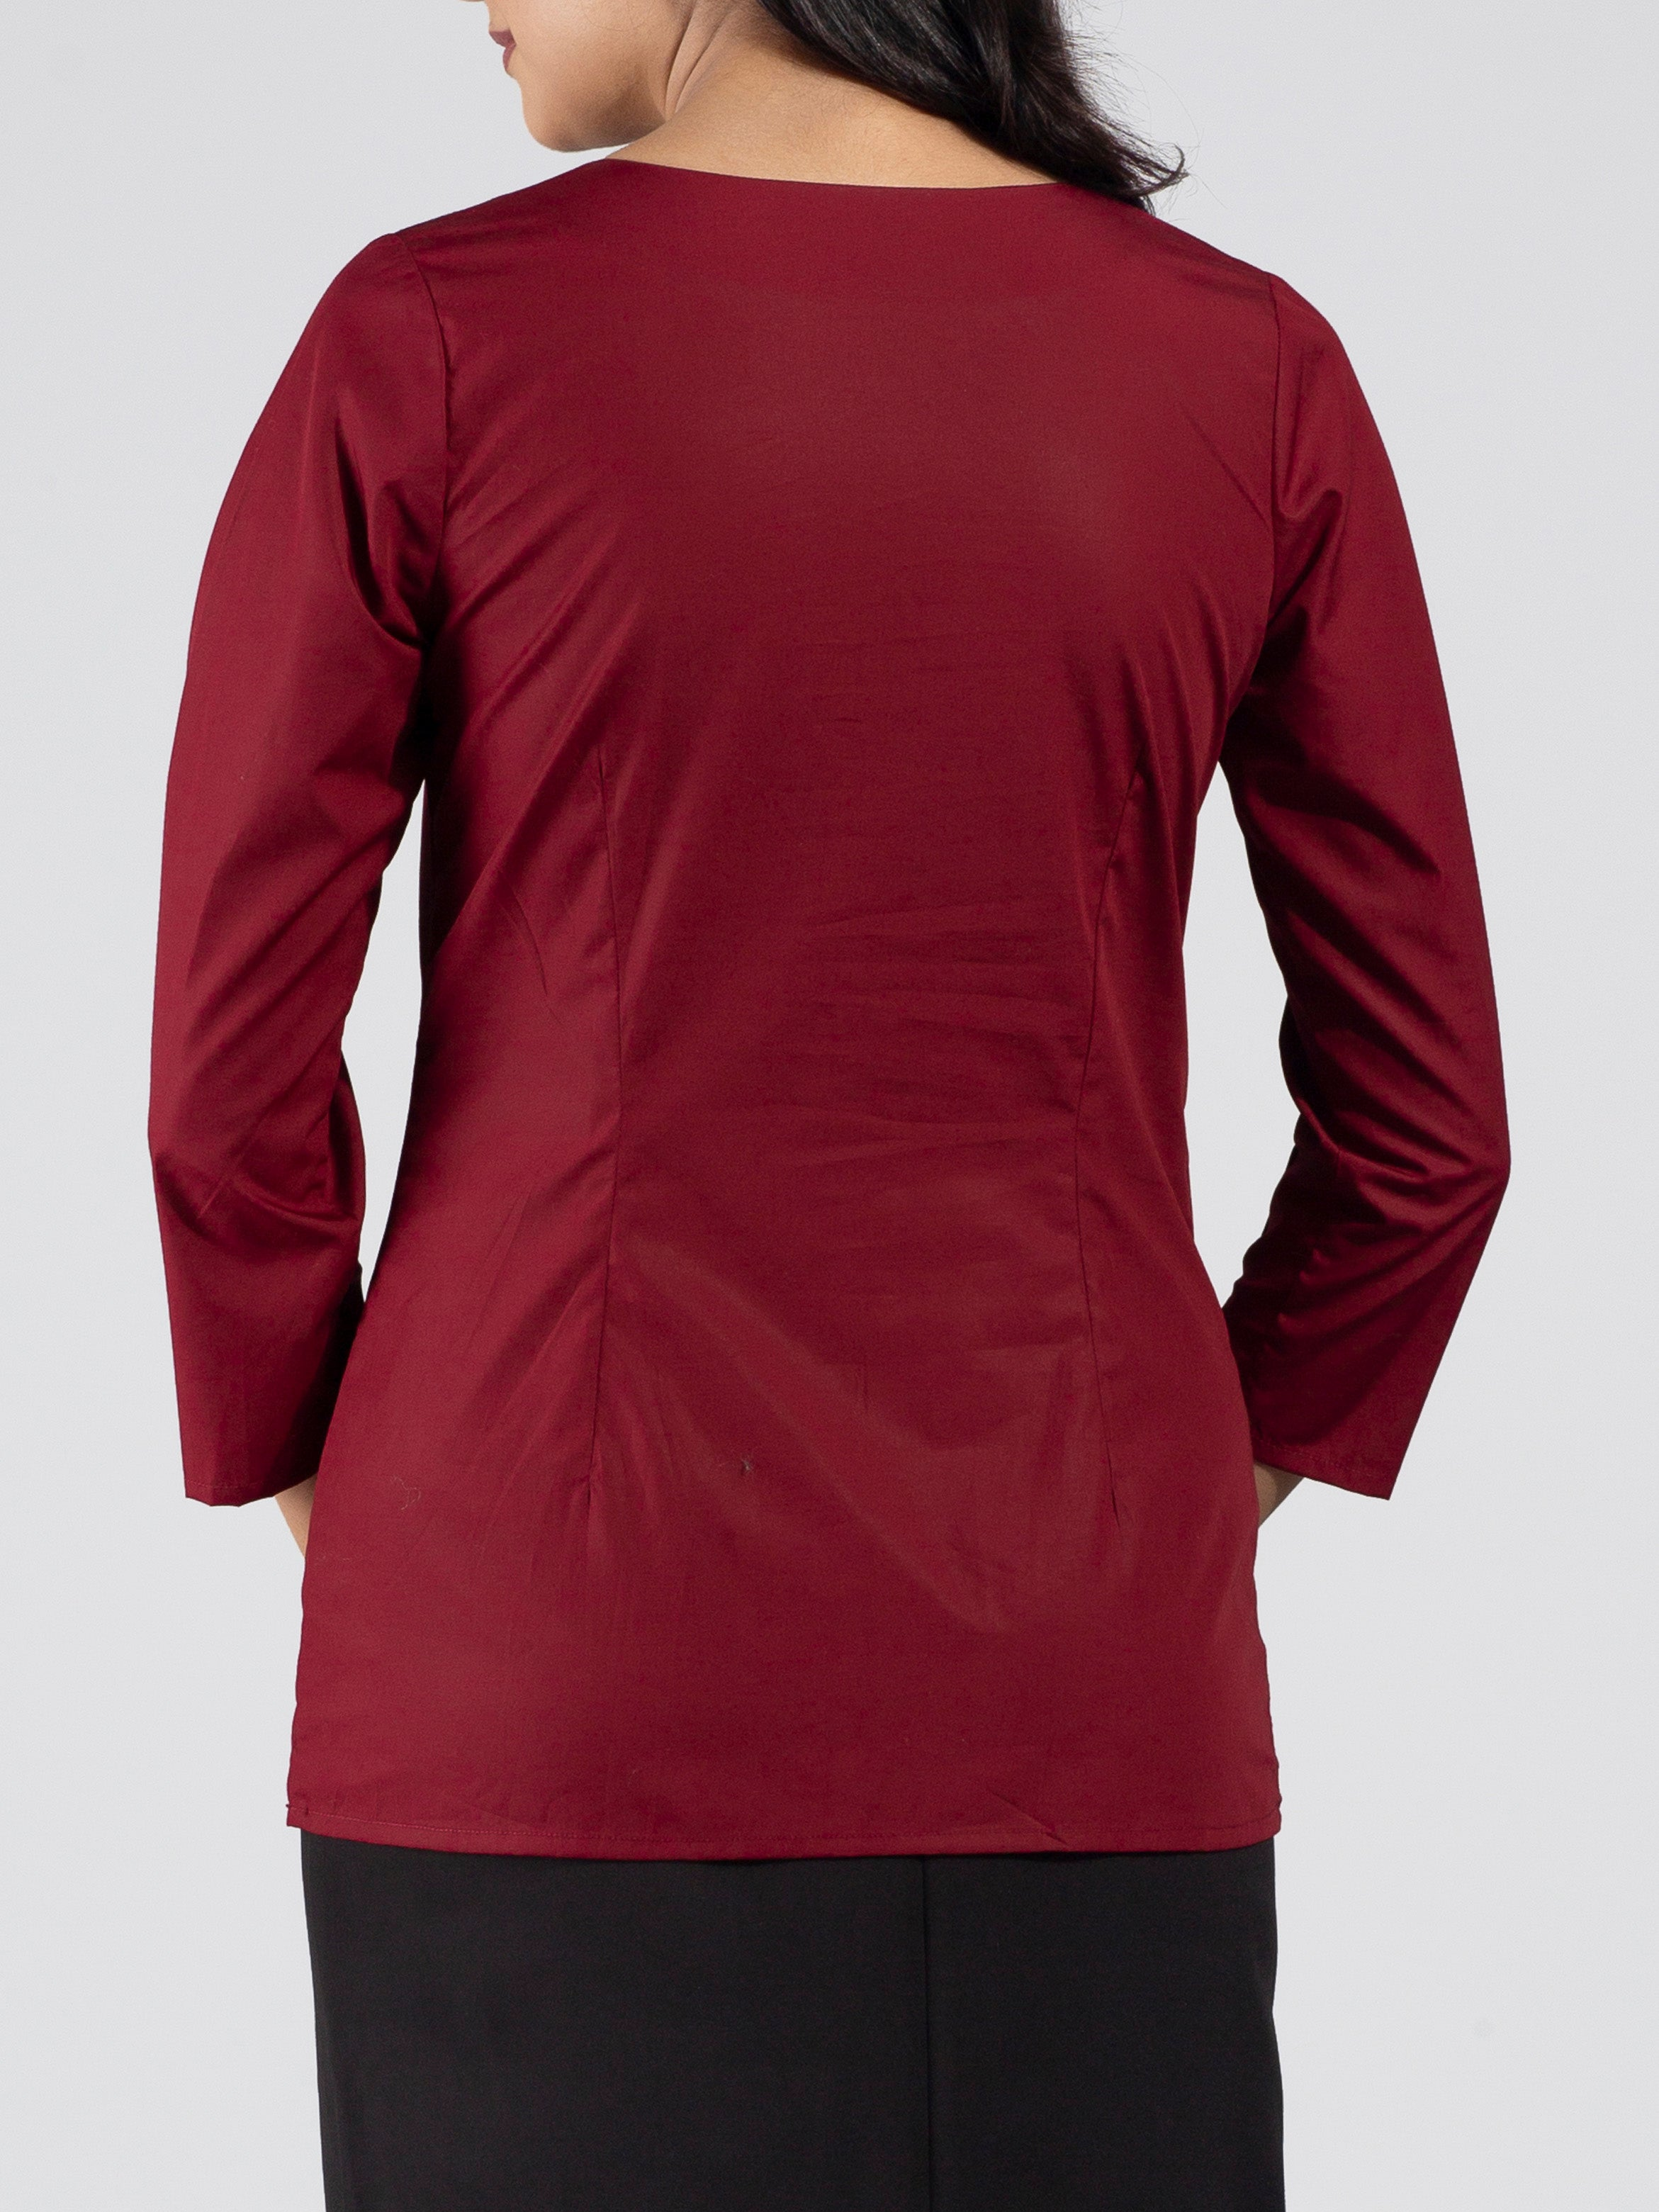 Quarter Sleeve Front Button Round Neck Top - Deep Red